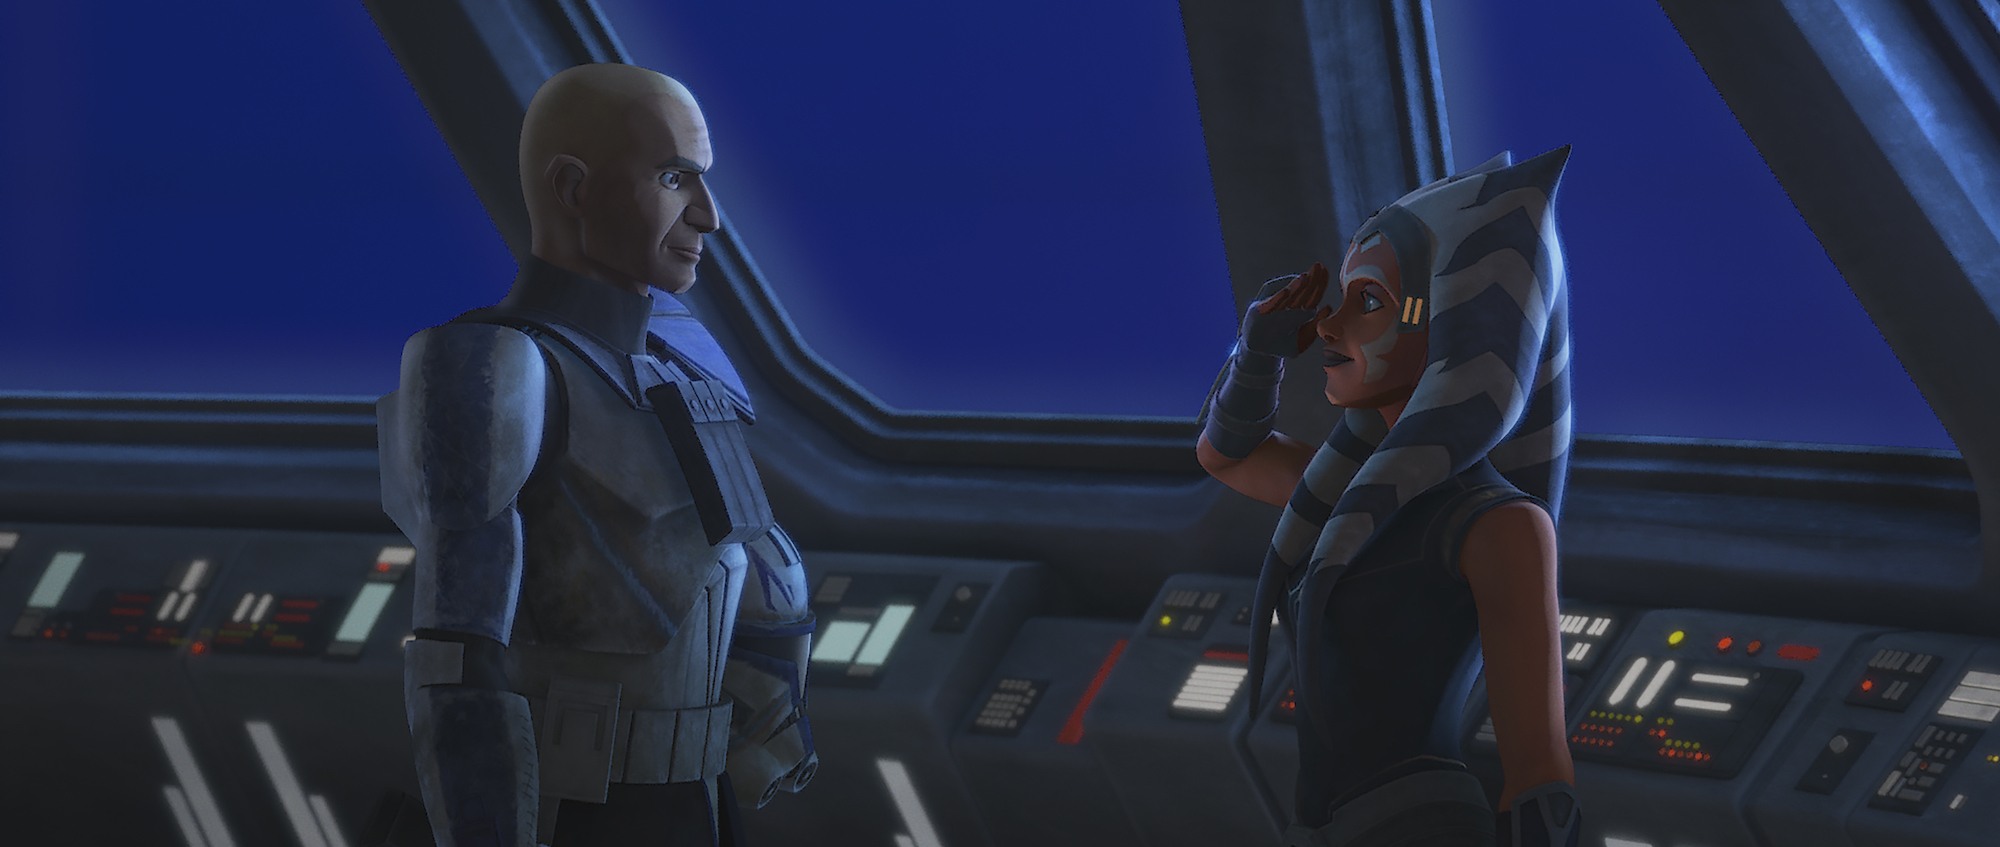 Rex and Ahsoka in hyperspace, right before Order 66 in 'Star Wars: The Clone Wars'' Season 7.